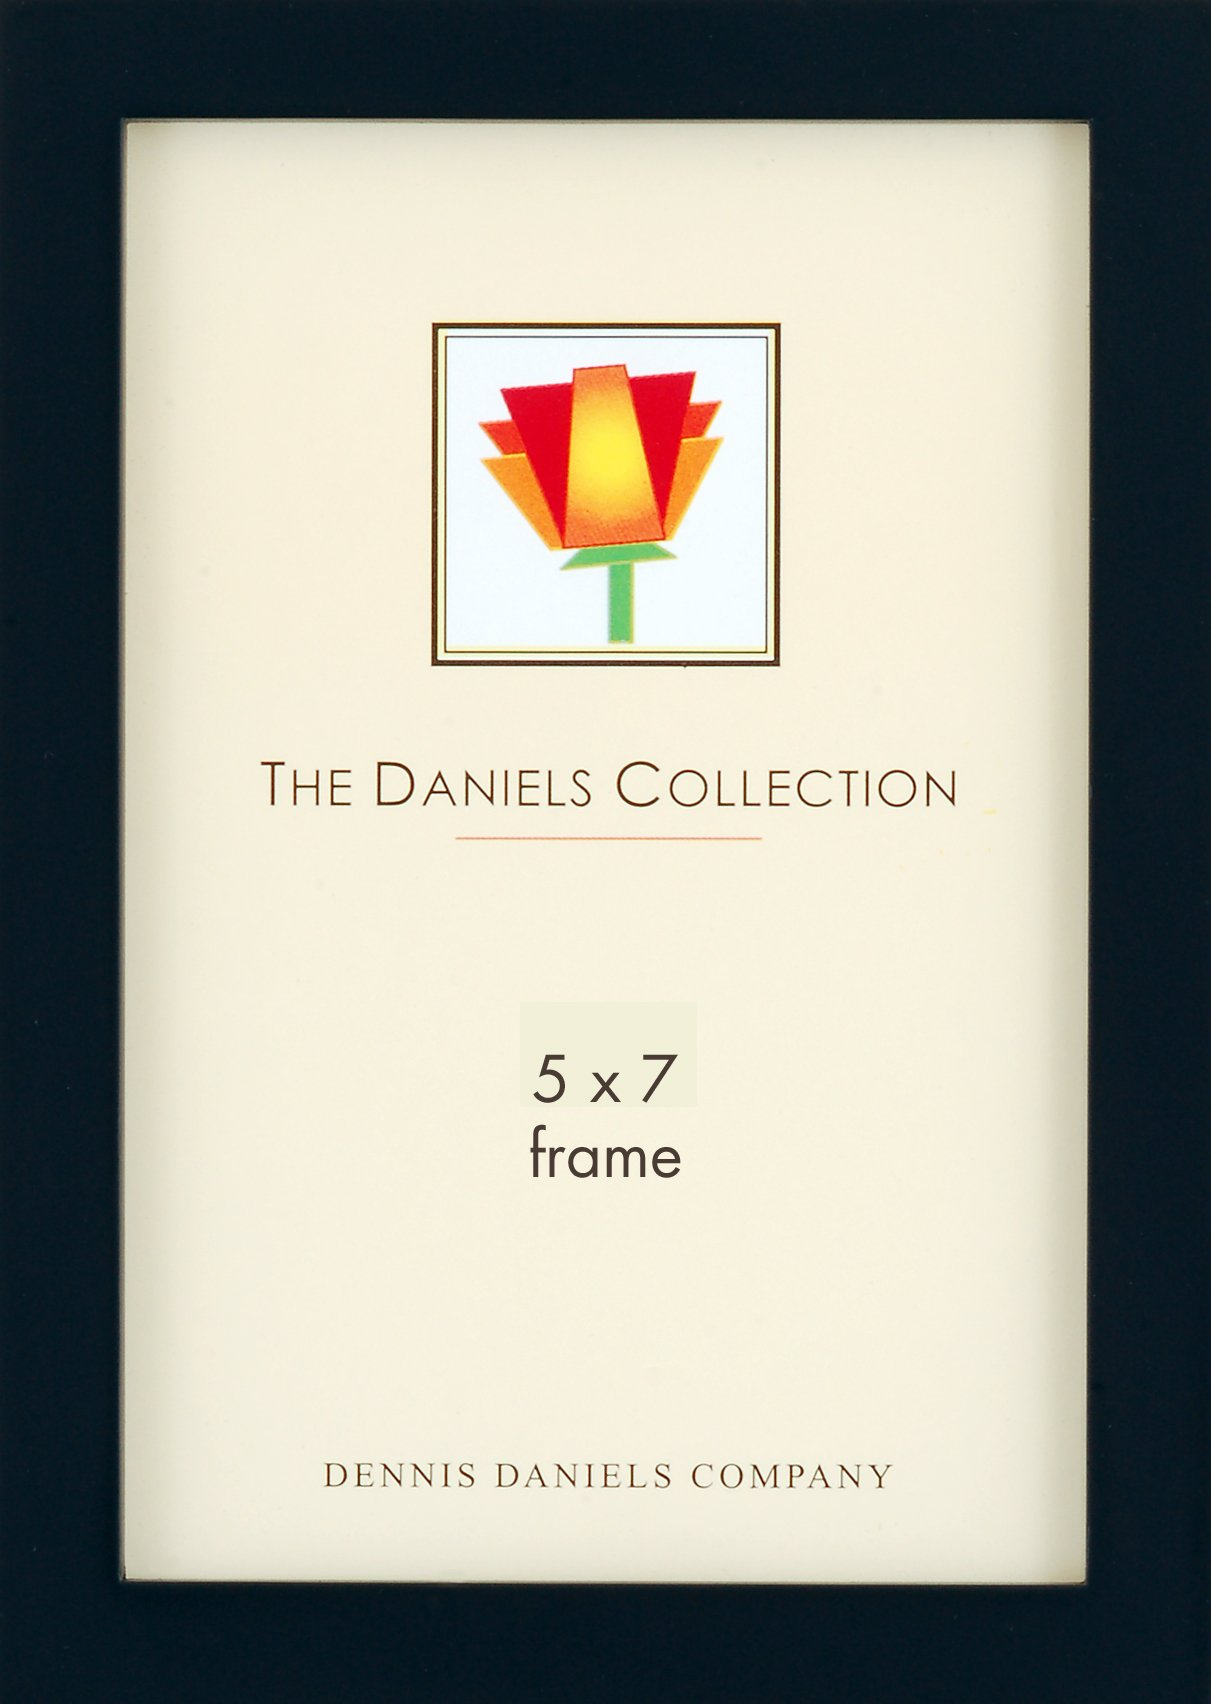 Dennis Daniels Gallery Woods Picture Frame, 5 x 7